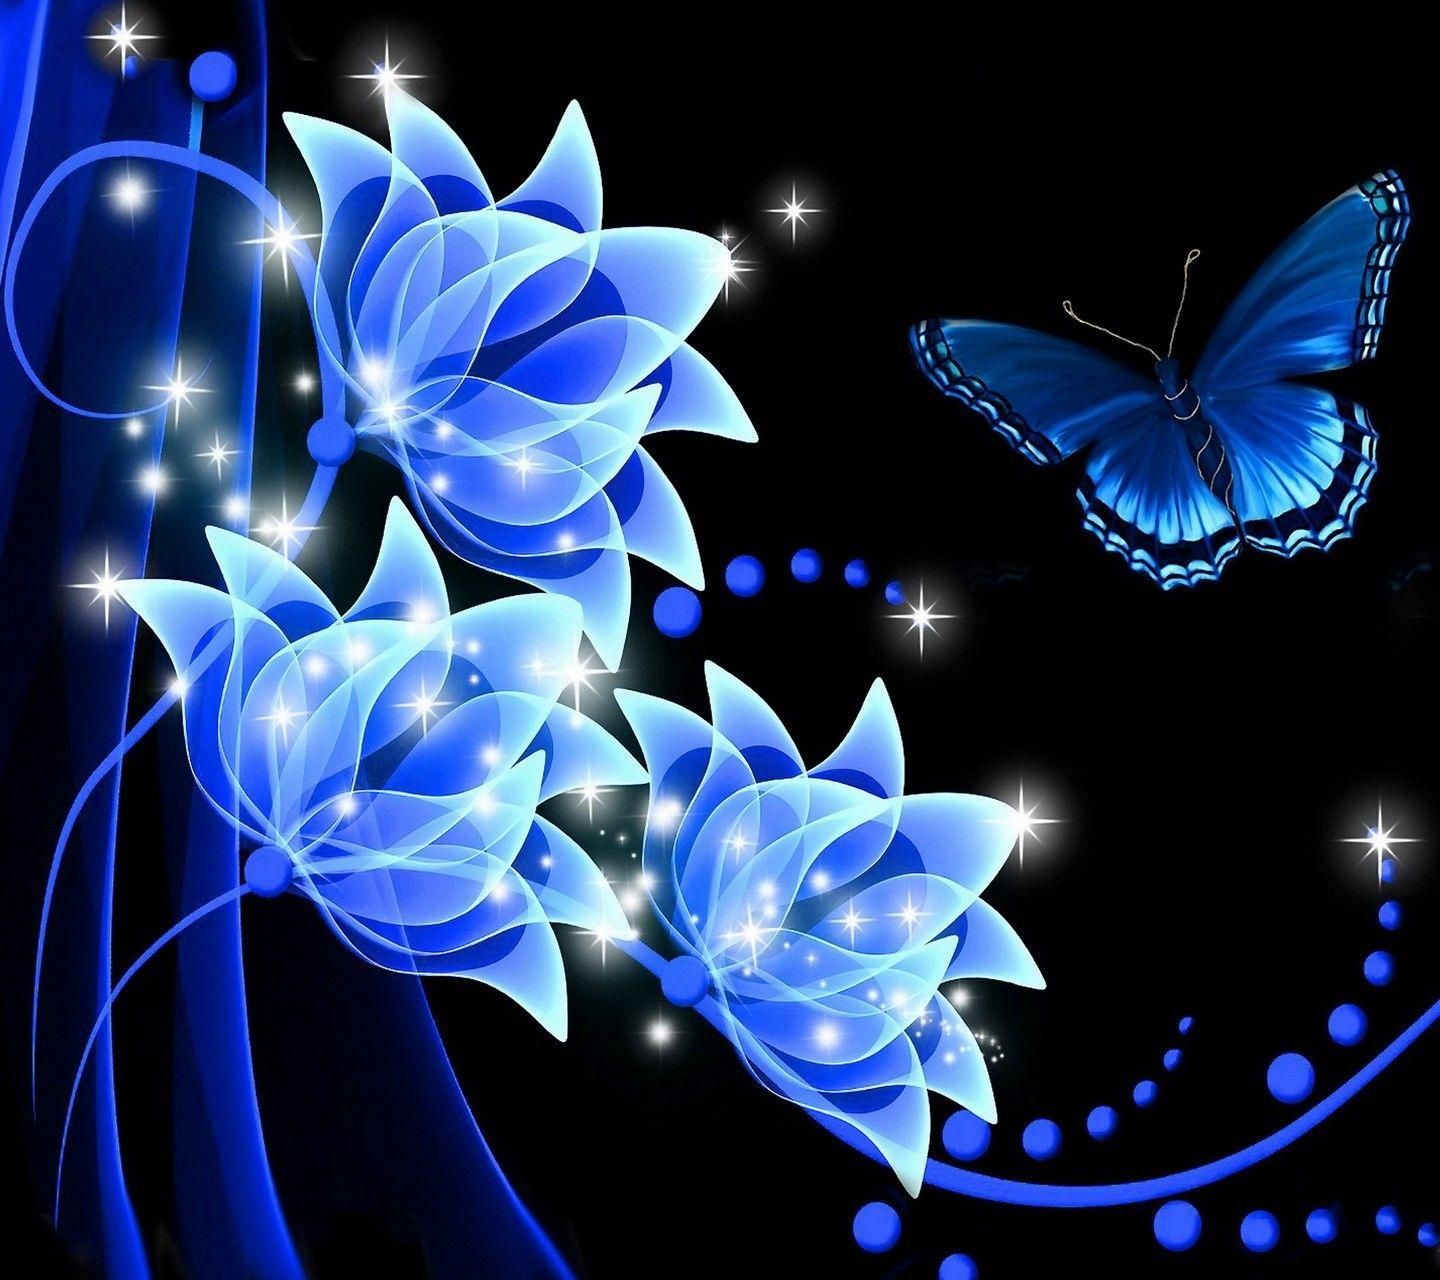 Cute Butterfly Wallpapers For Mobile Phones